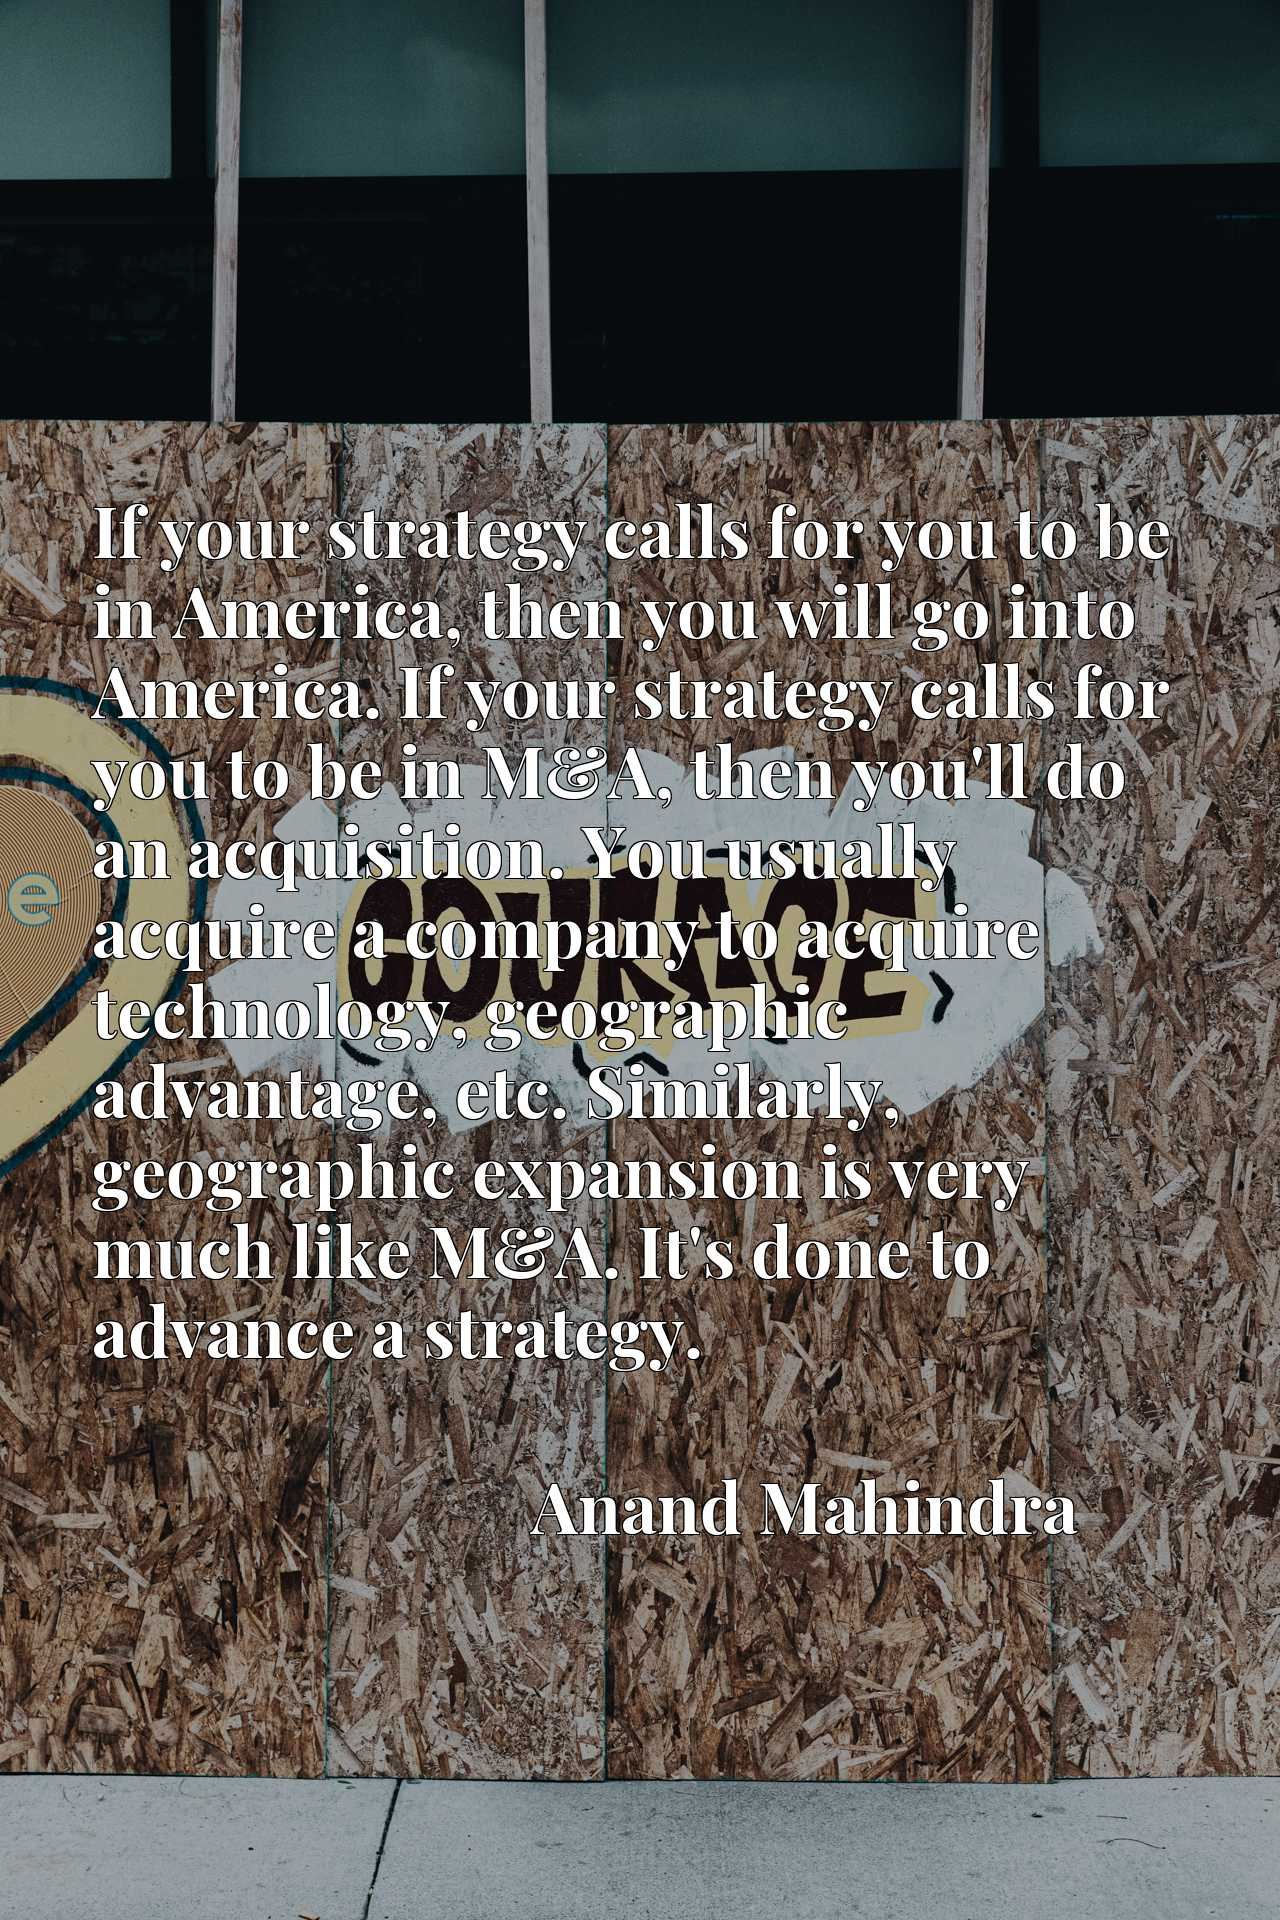 If your strategy calls for you to be in America, then you will go into America. If your strategy calls for you to be in M&A, then you'll do an acquisition. You usually acquire a company to acquire technology, geographic advantage, etc. Similarly, geographic expansion is very much like M&A. It's done to advance a strategy.